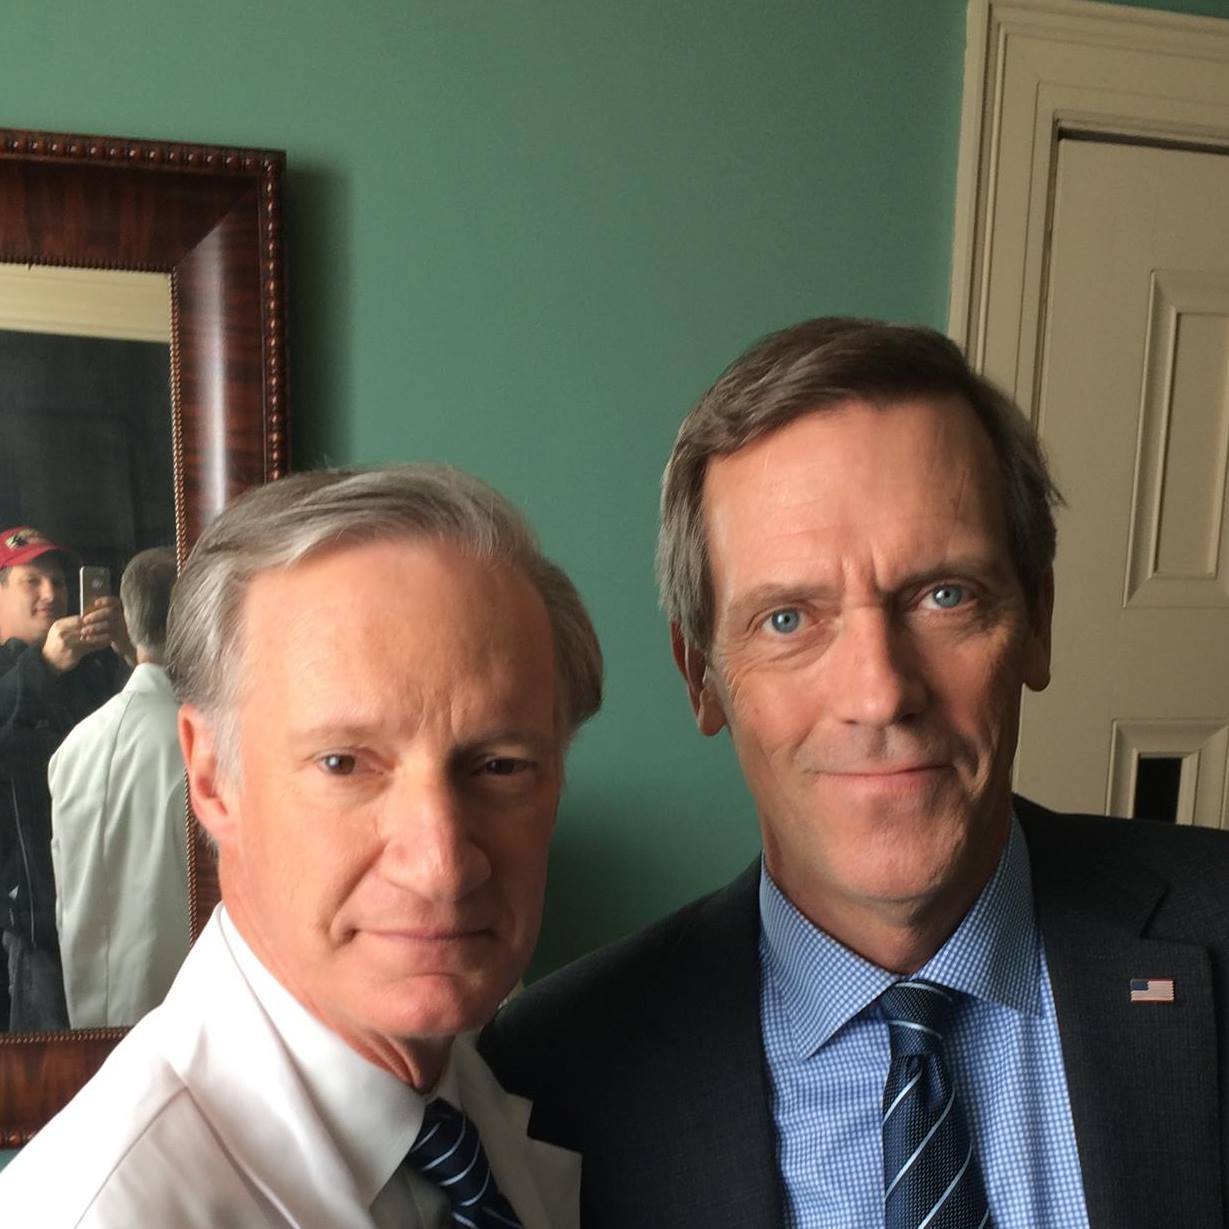 """In December, 2014, Bob worked on """"Veep,"""" playing Julia Dreyfuss' White House doctor. He took a moment to pose with Hugh Laurie (""""House"""") on the set. (Photo from Bob's Facebook page.)"""